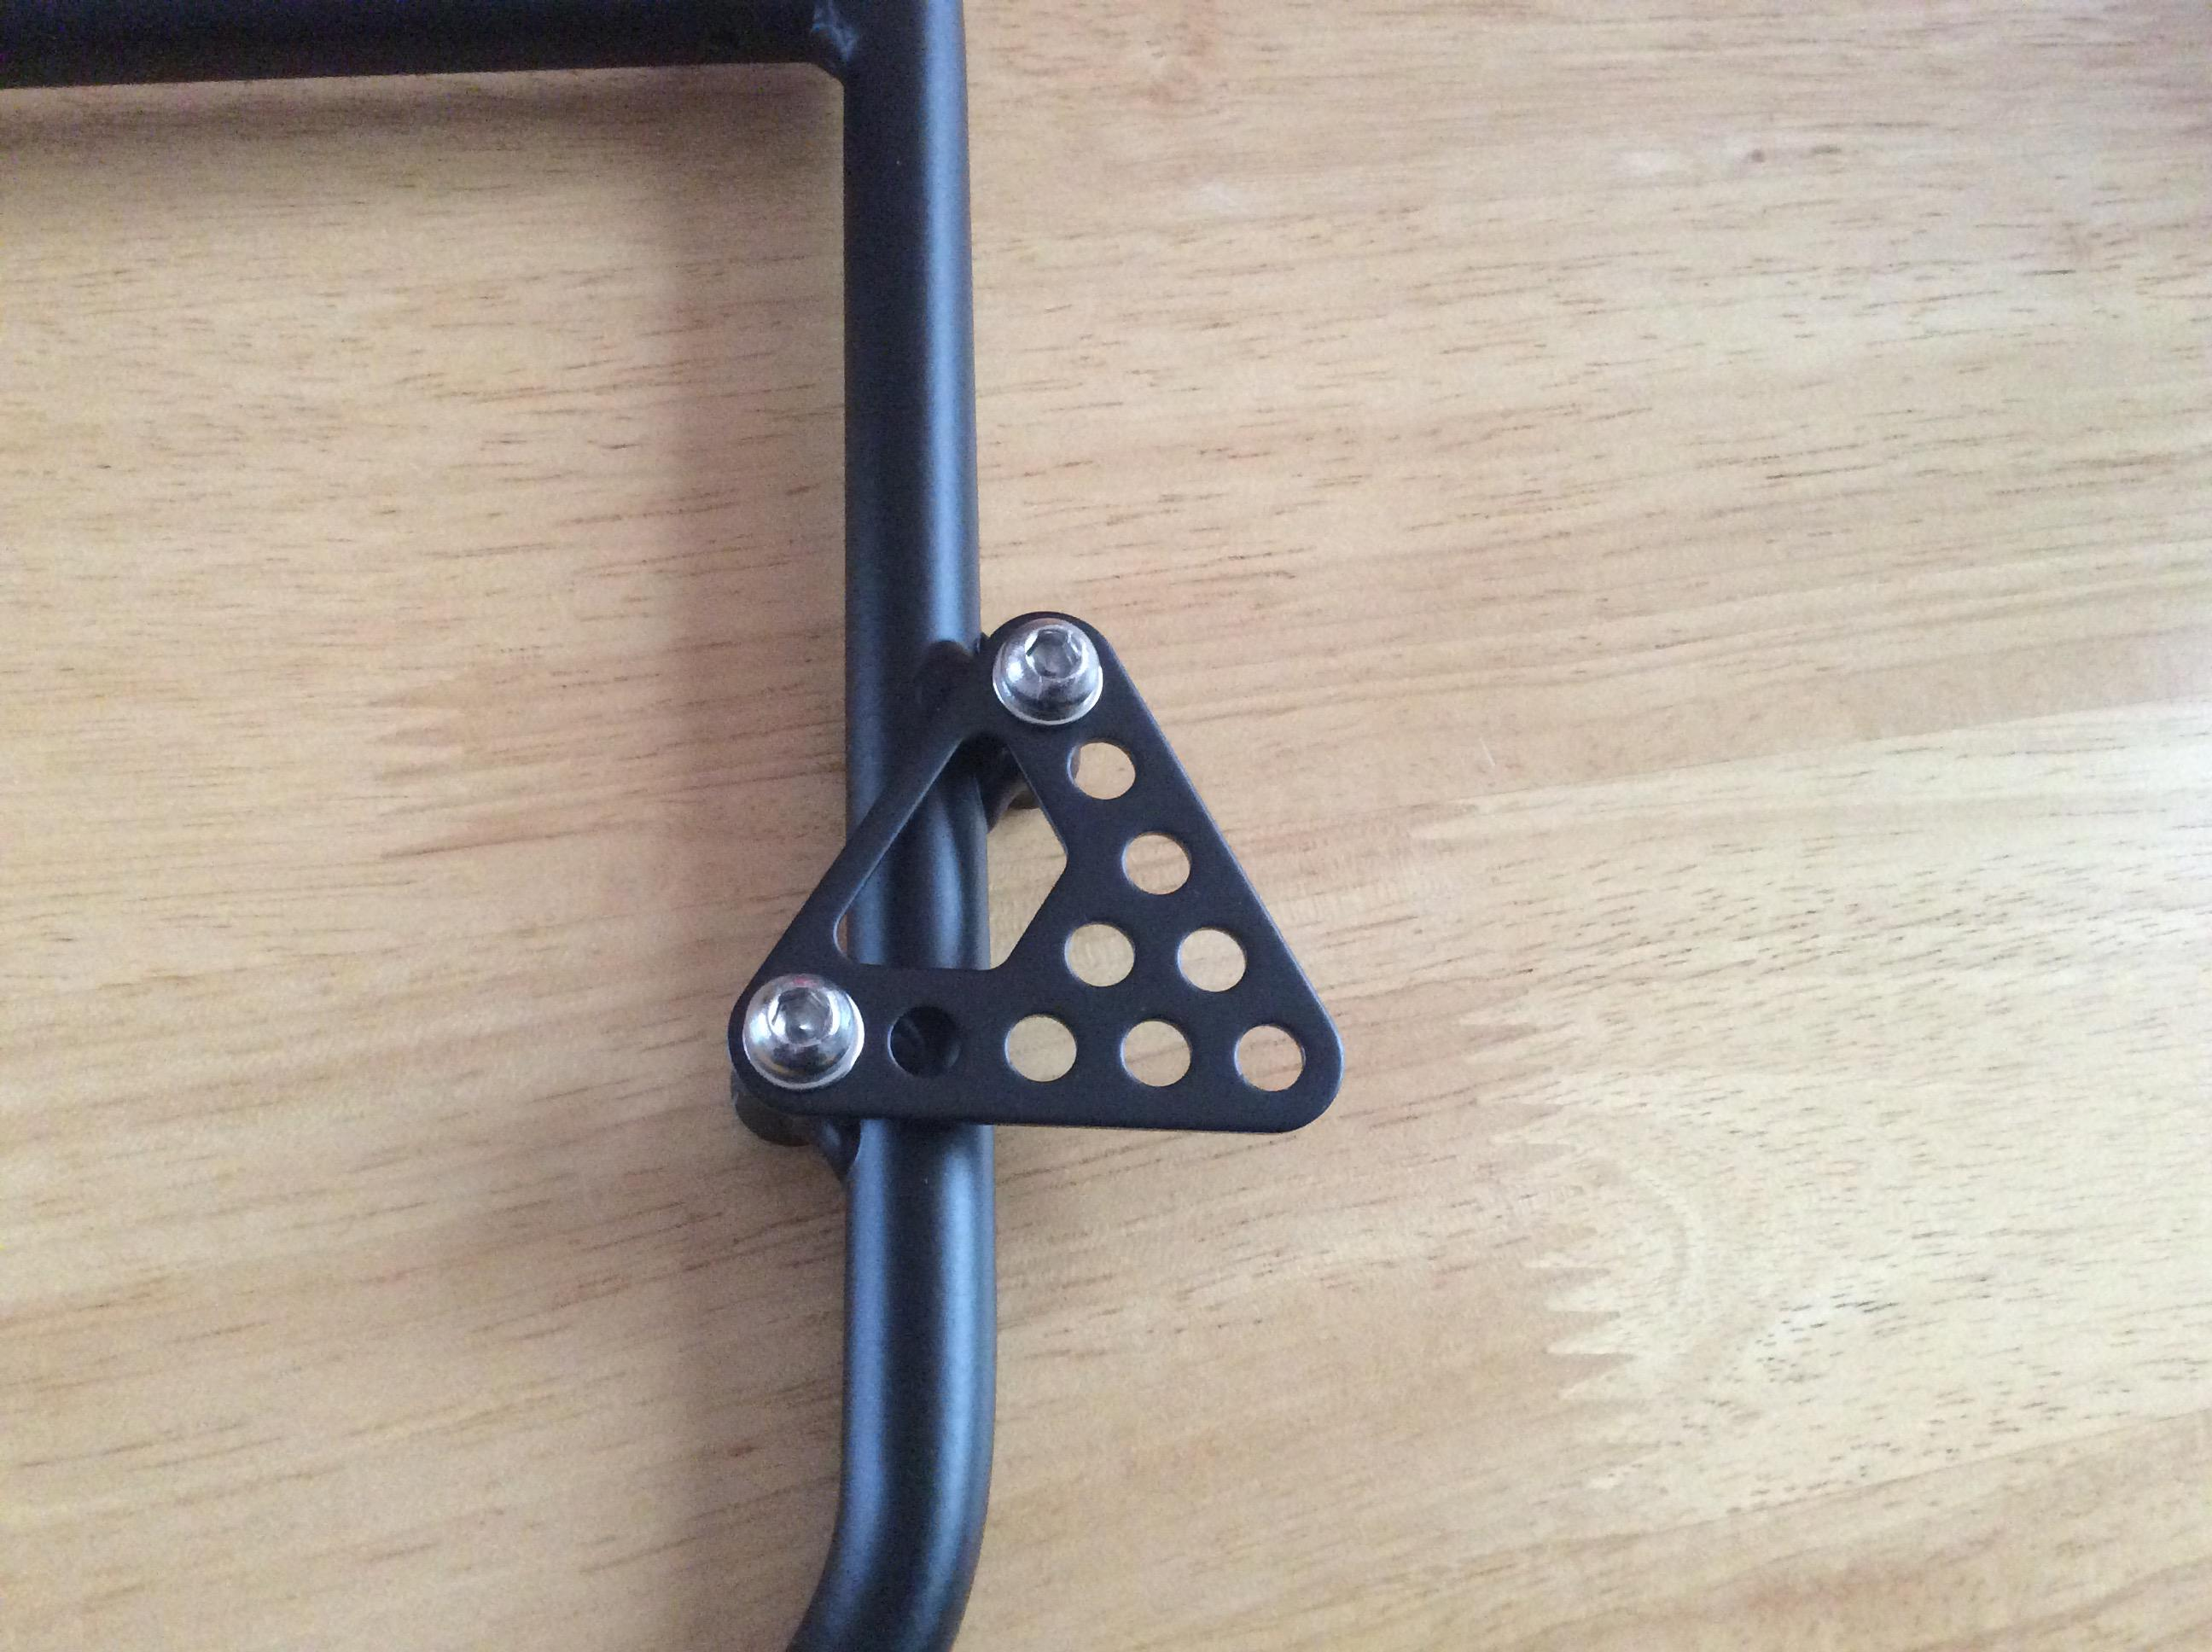 f4669028e82 specialized awol front rack